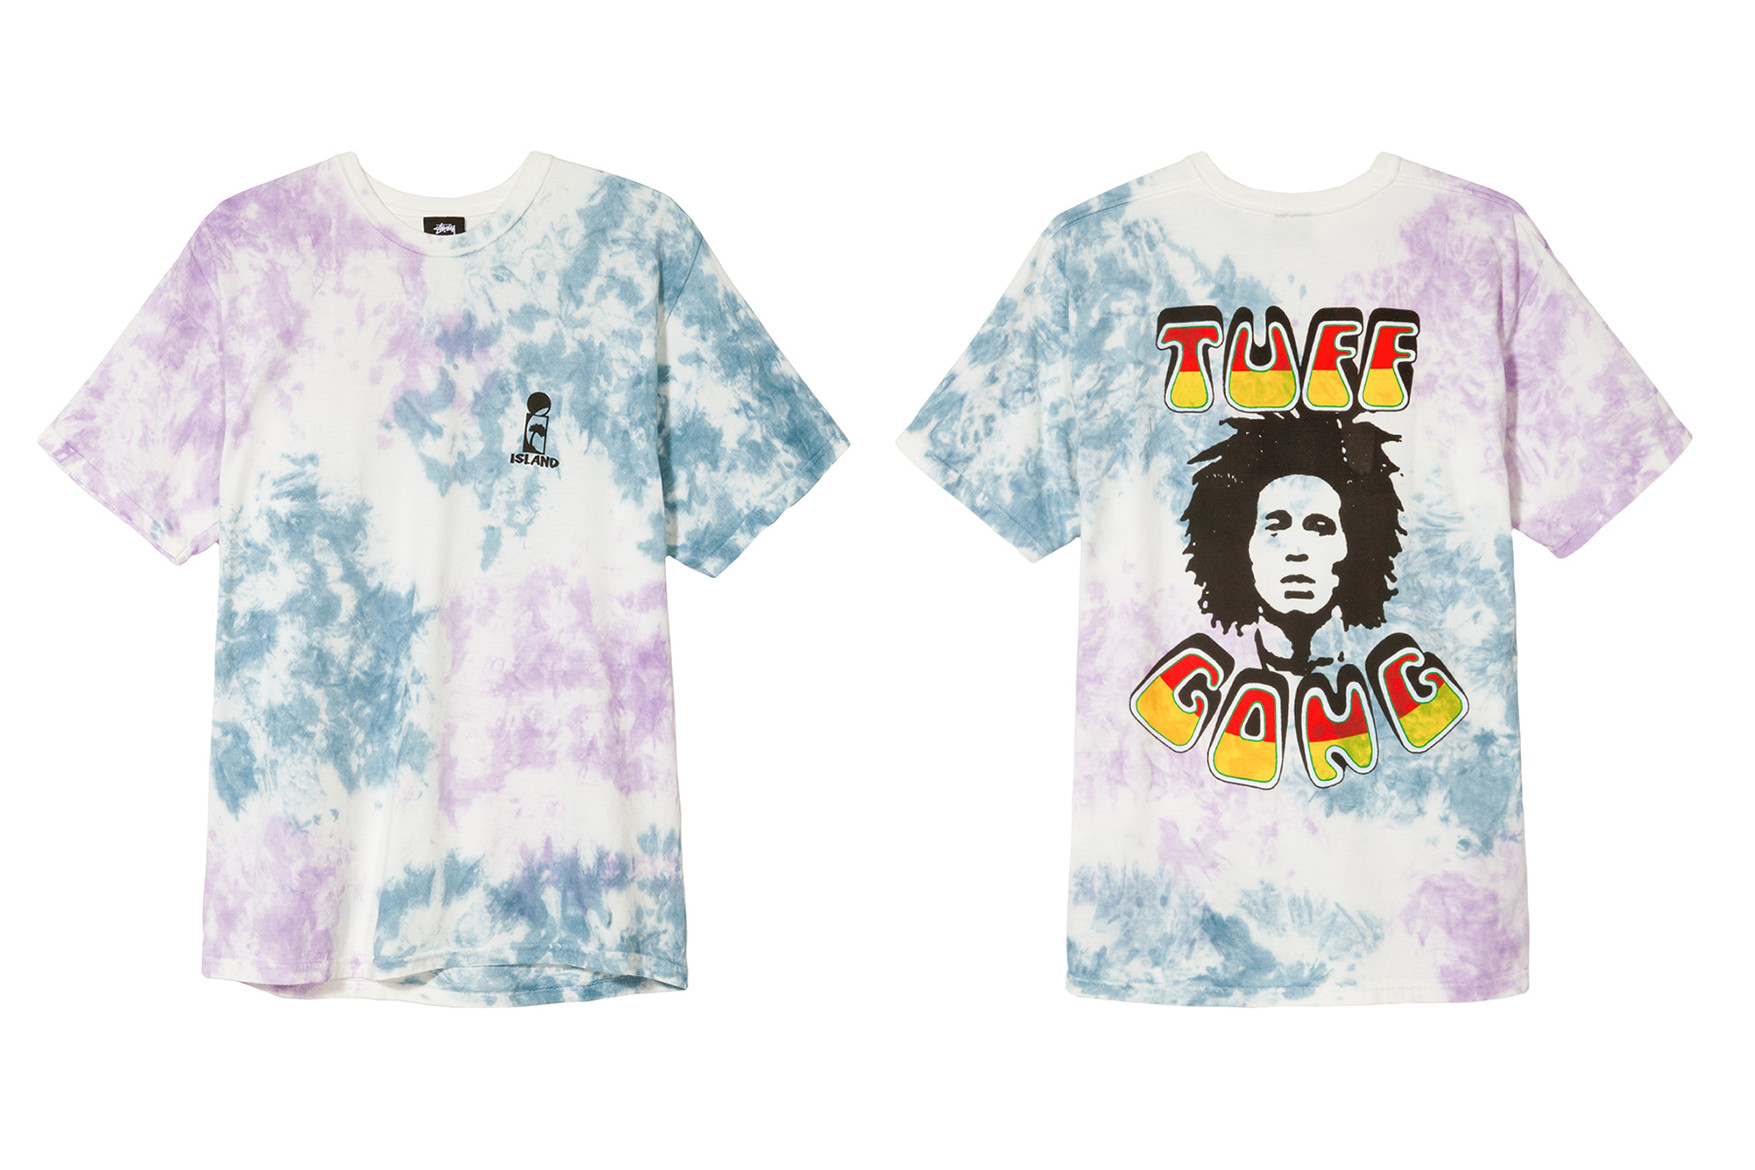 Bob Marley x Stüssy 2018 Collaboration